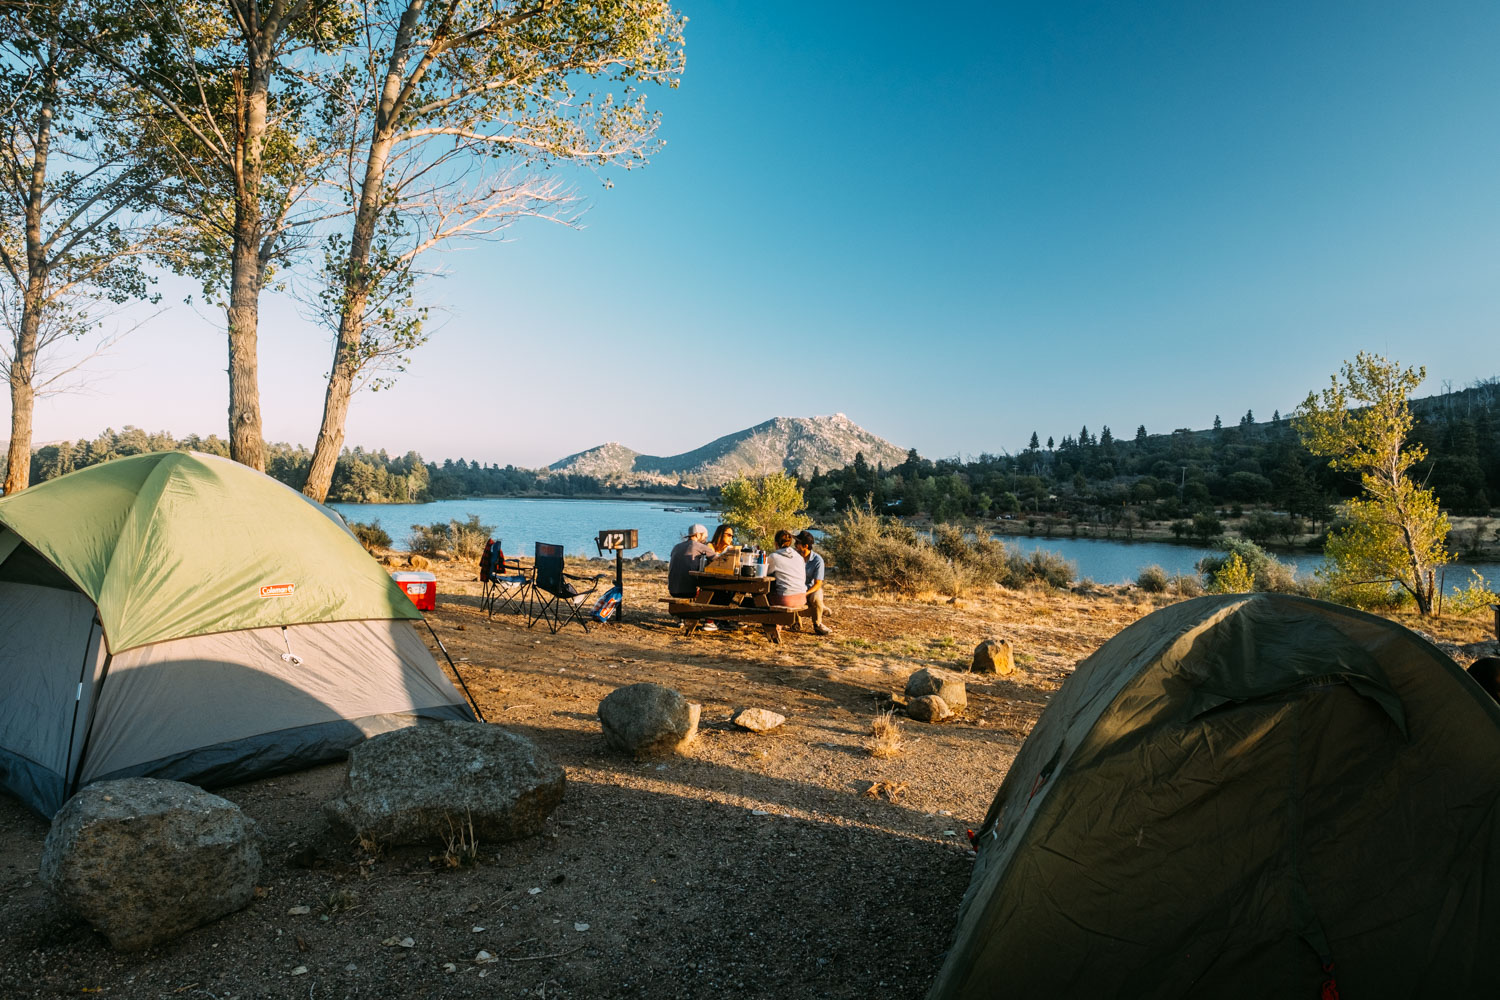 Camping by the picturesque Lake Cuyamaca, Julian, CA